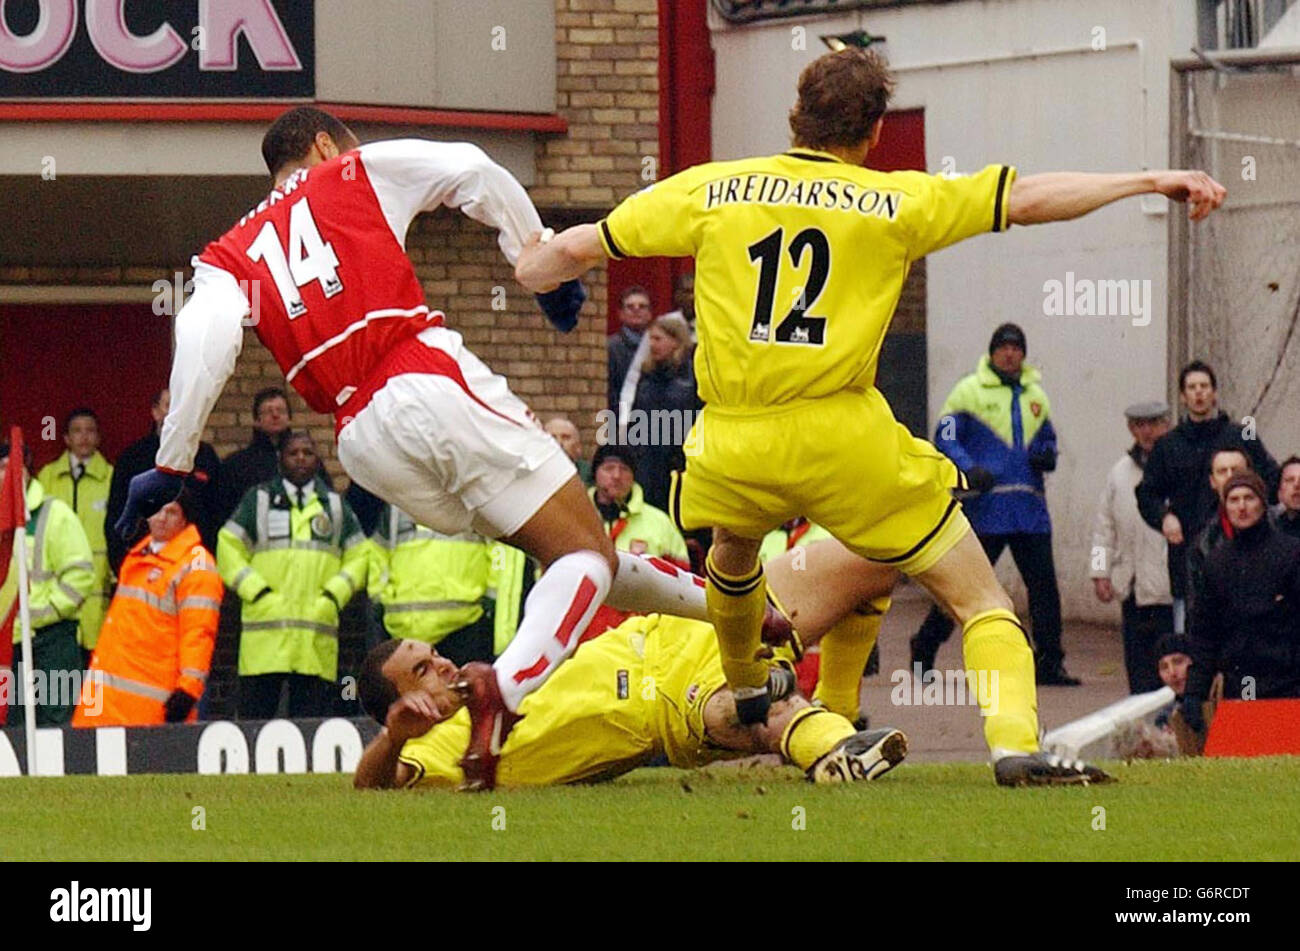 Arsenal's Thierry Henry scores - Stock Image